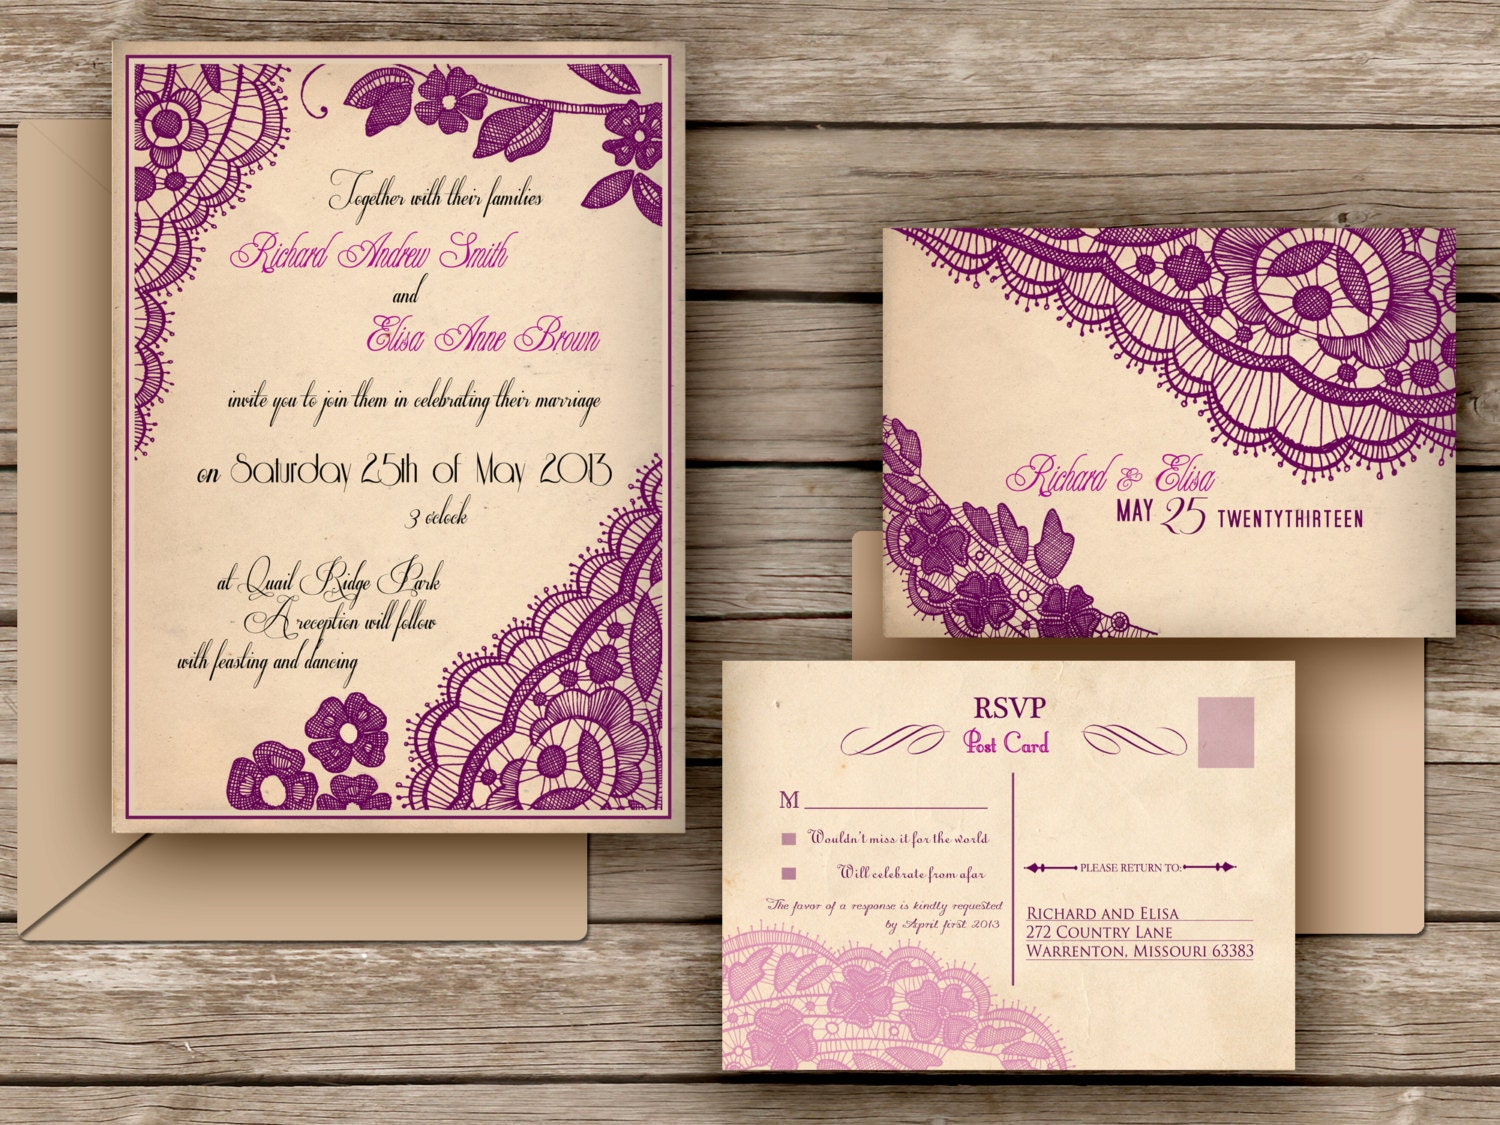 Wedding Invitation With Lace: WEDDING INVITATIONS PRINTABLE Lace By DesignedWithAmore On